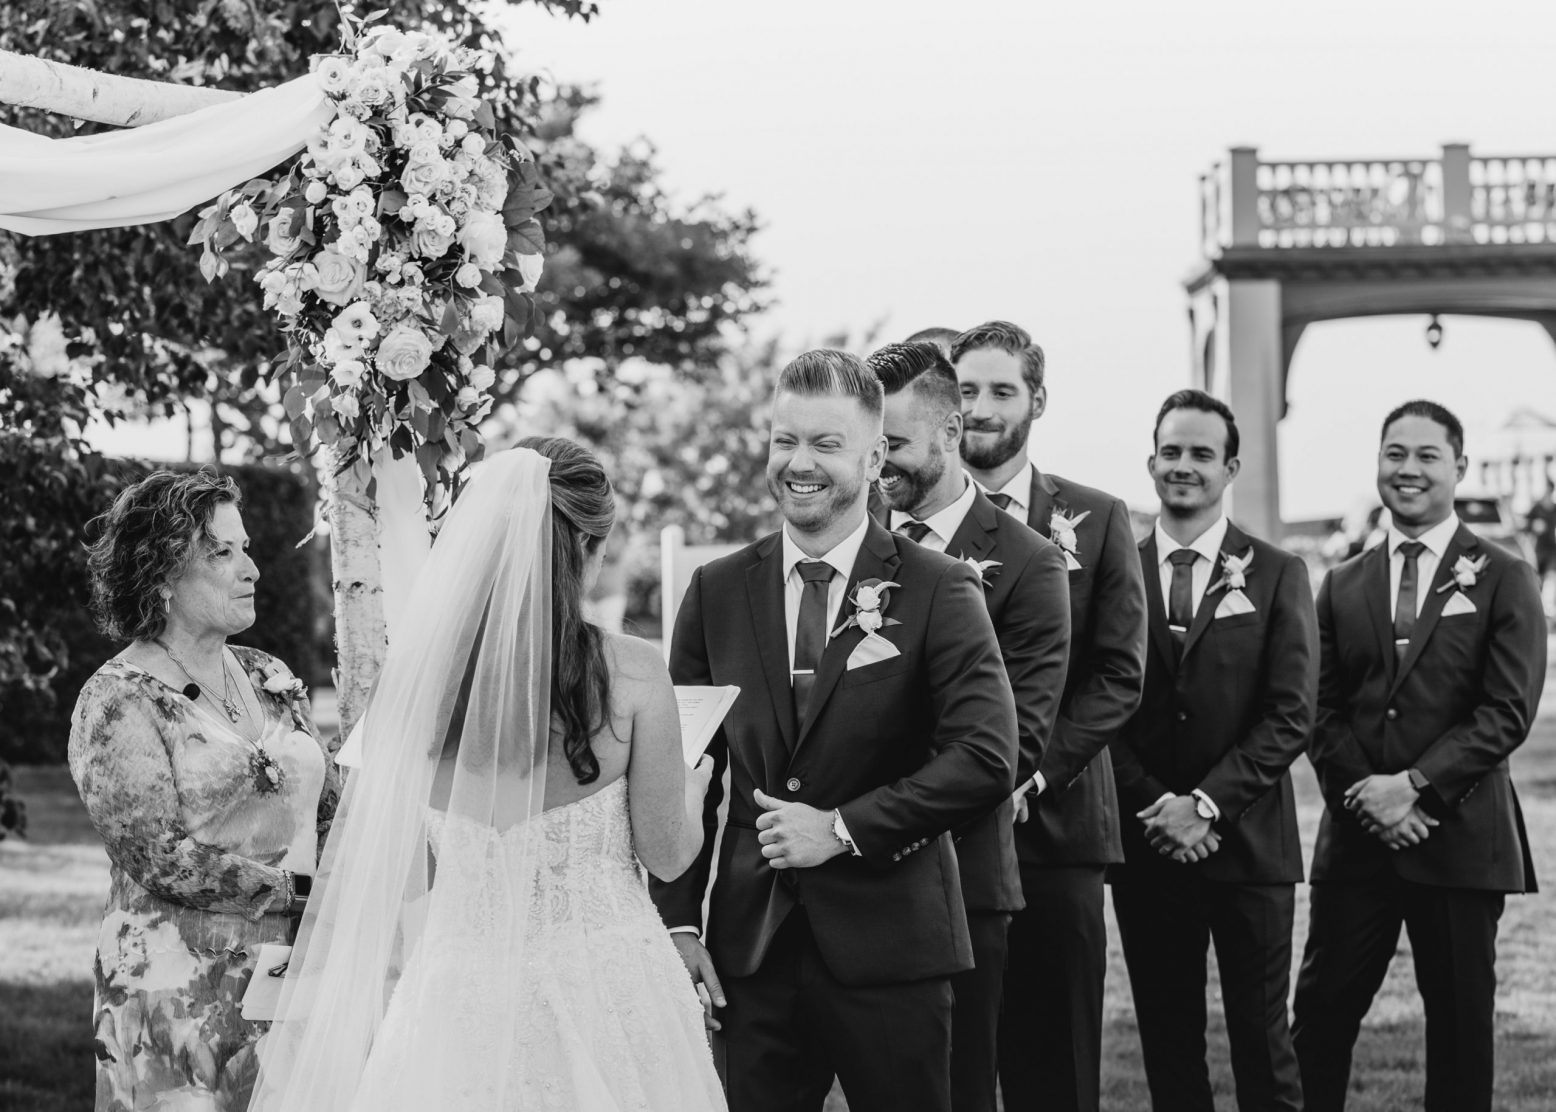 A couple exchanges vows at their Cape Cod wedding | Boston Wedding Photographer